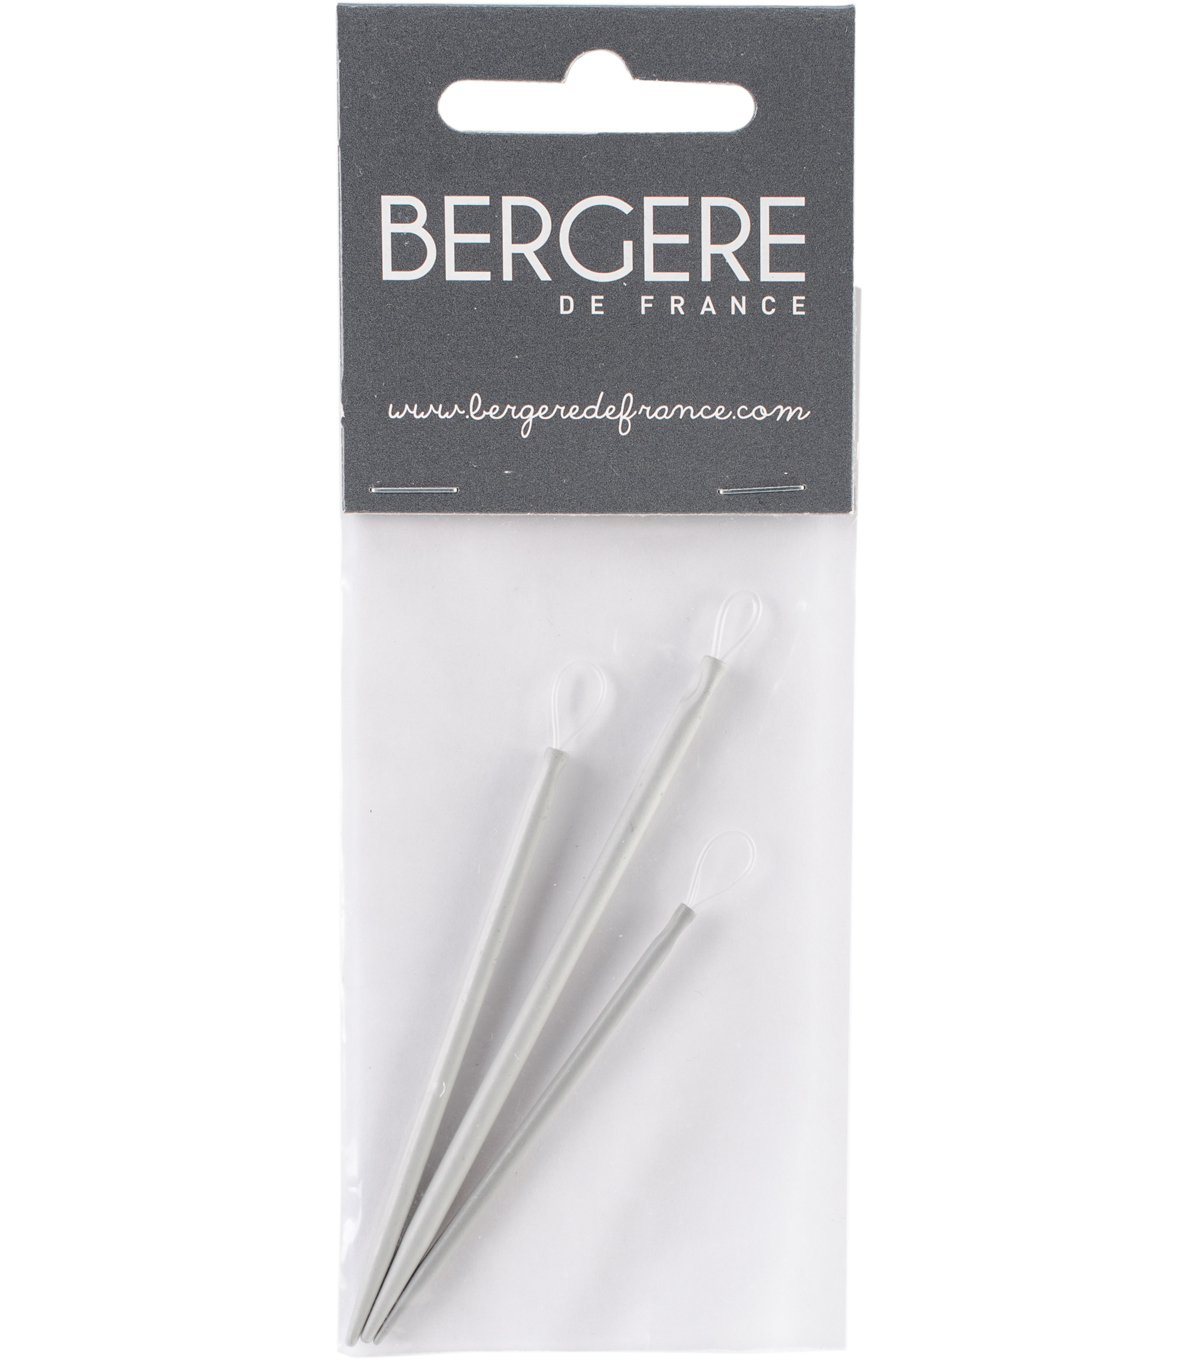 Bergere De France Yarn Sewing Needles-Assorted Sizes